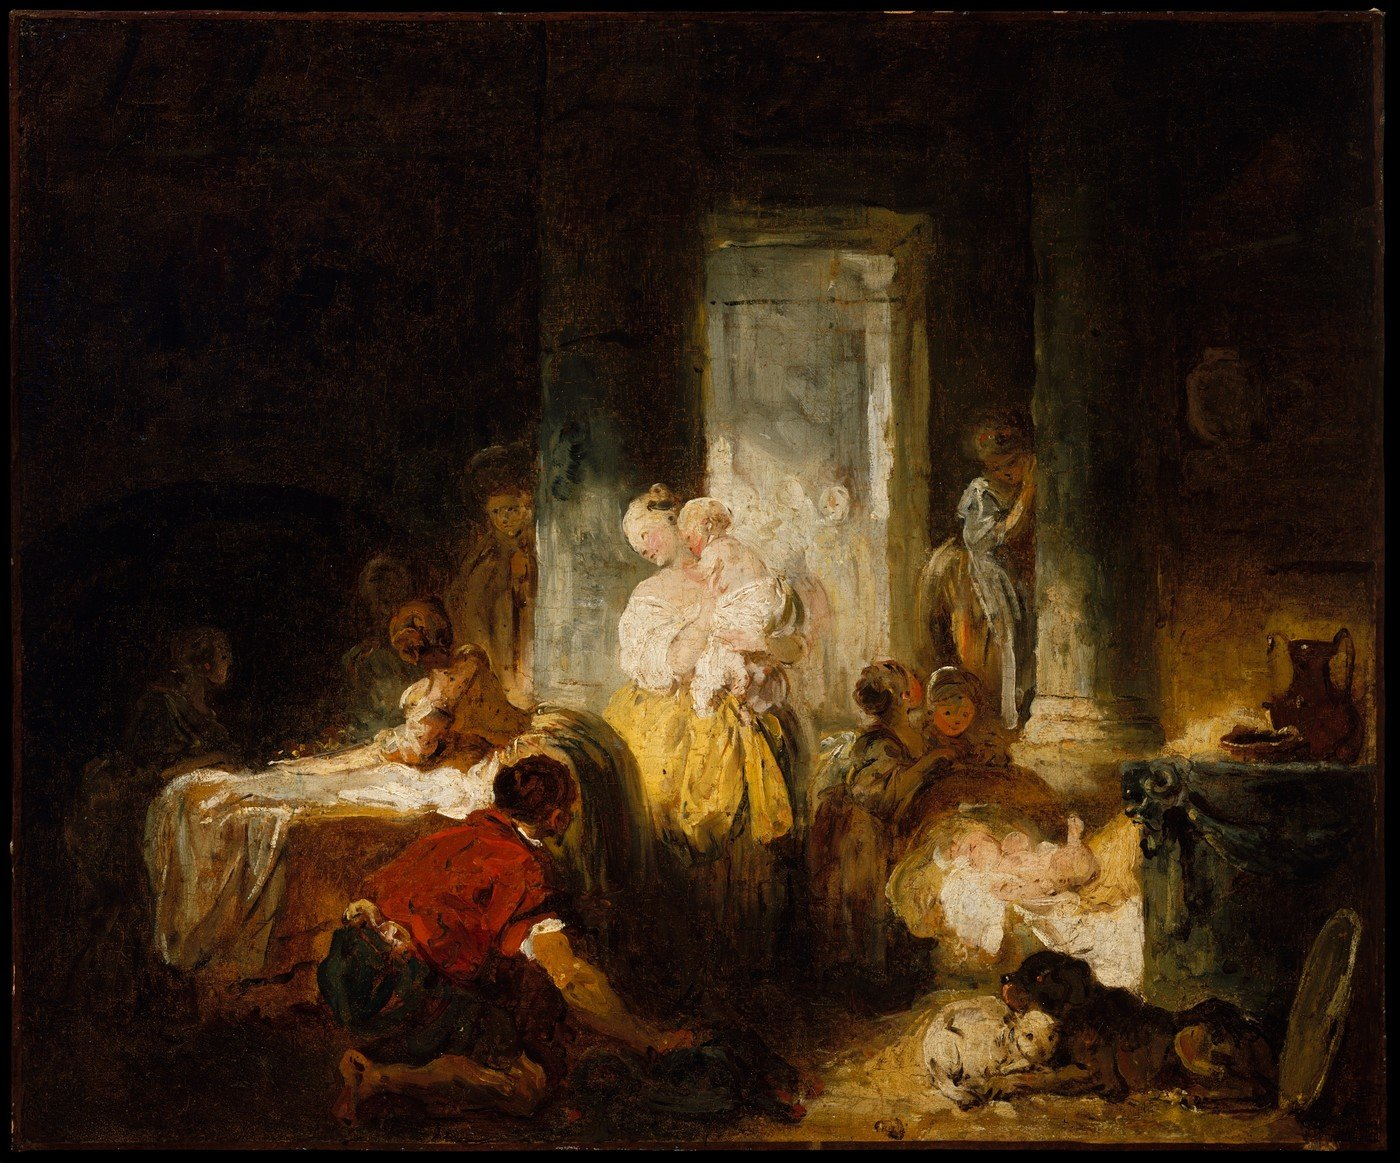 Jean-honore Fragonard Reproductions 1st Art